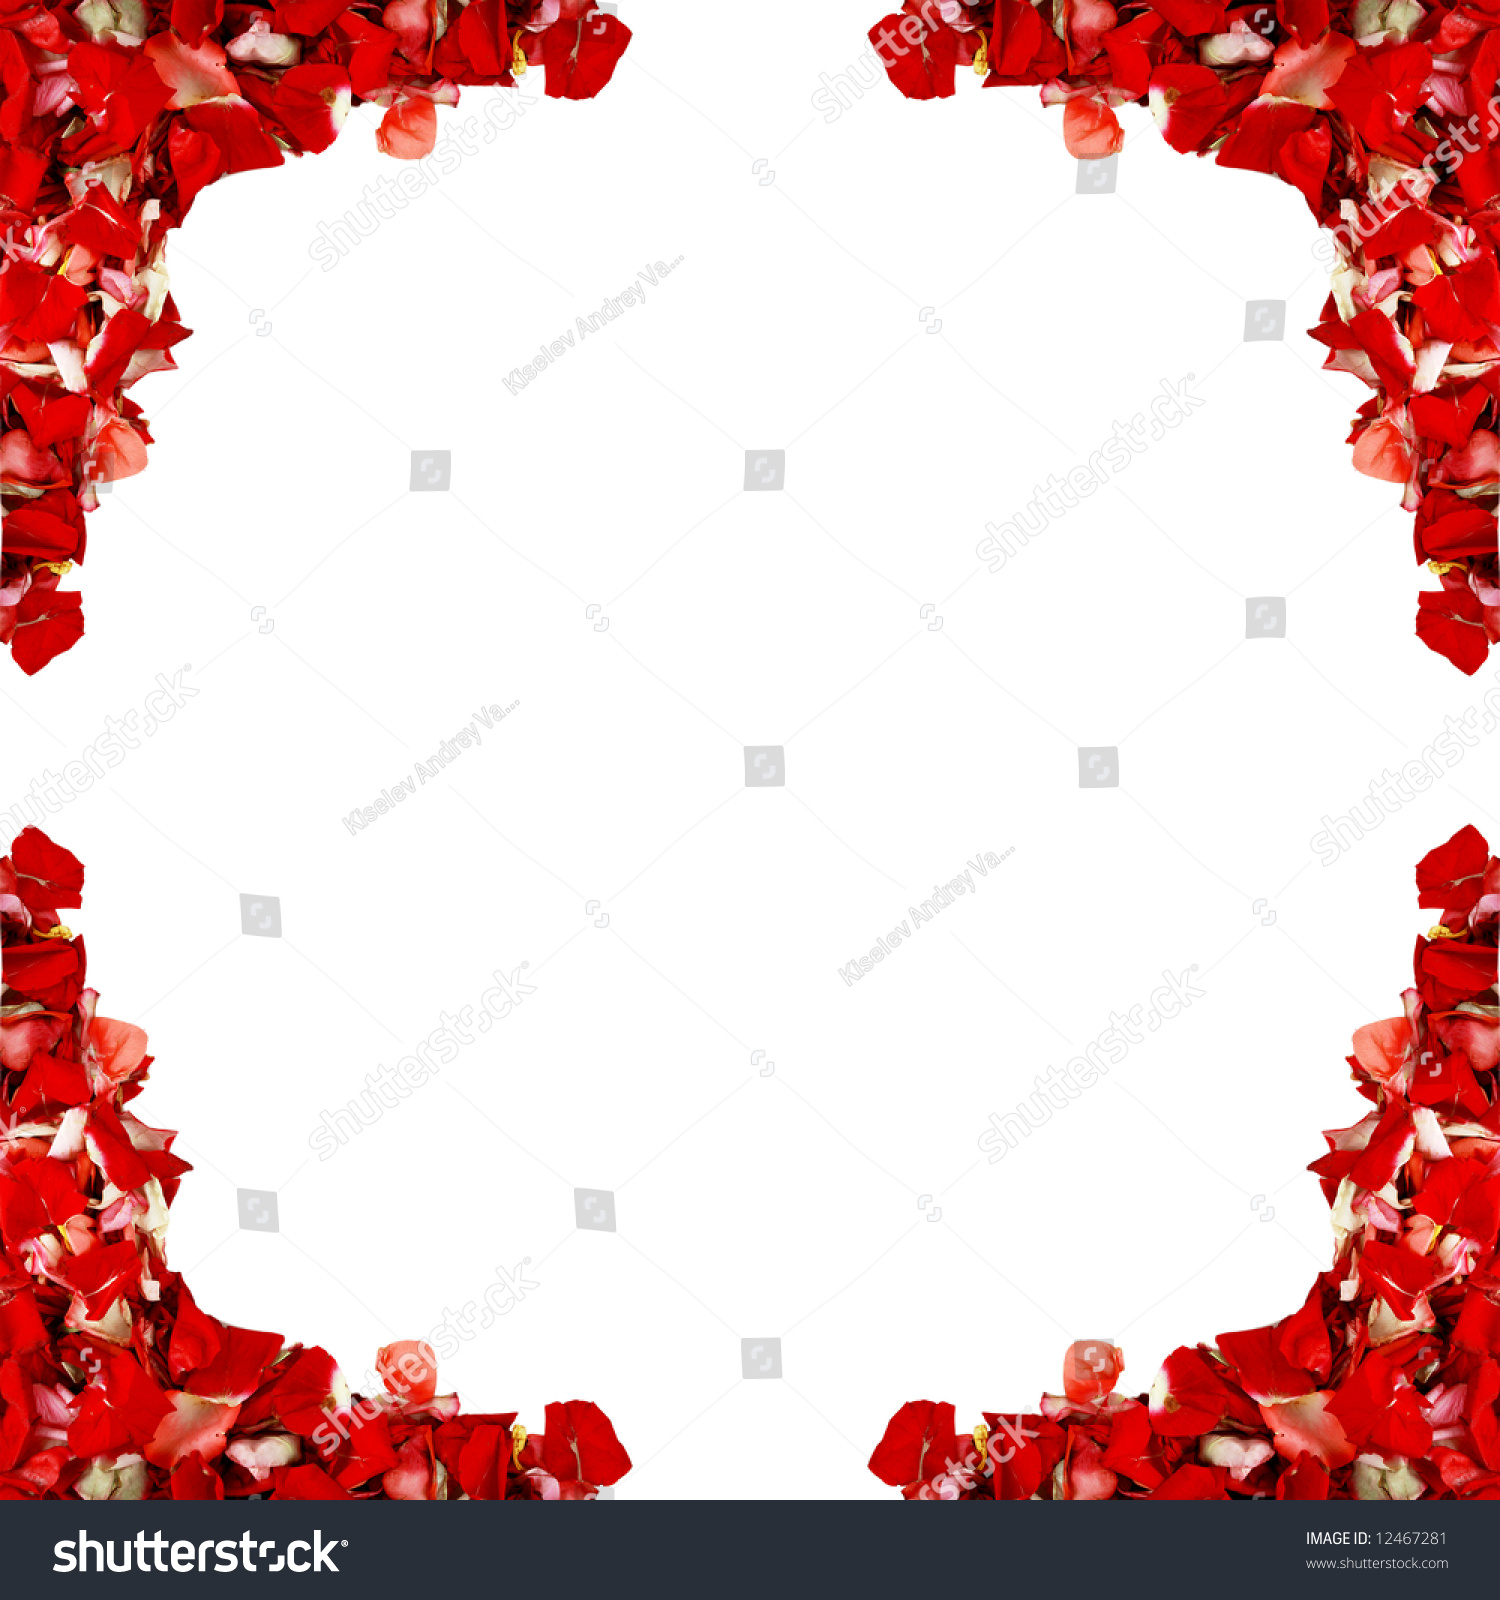 Red gift bows border with clipping path for easy background removing - Red Rose Plants Visiting Card Background